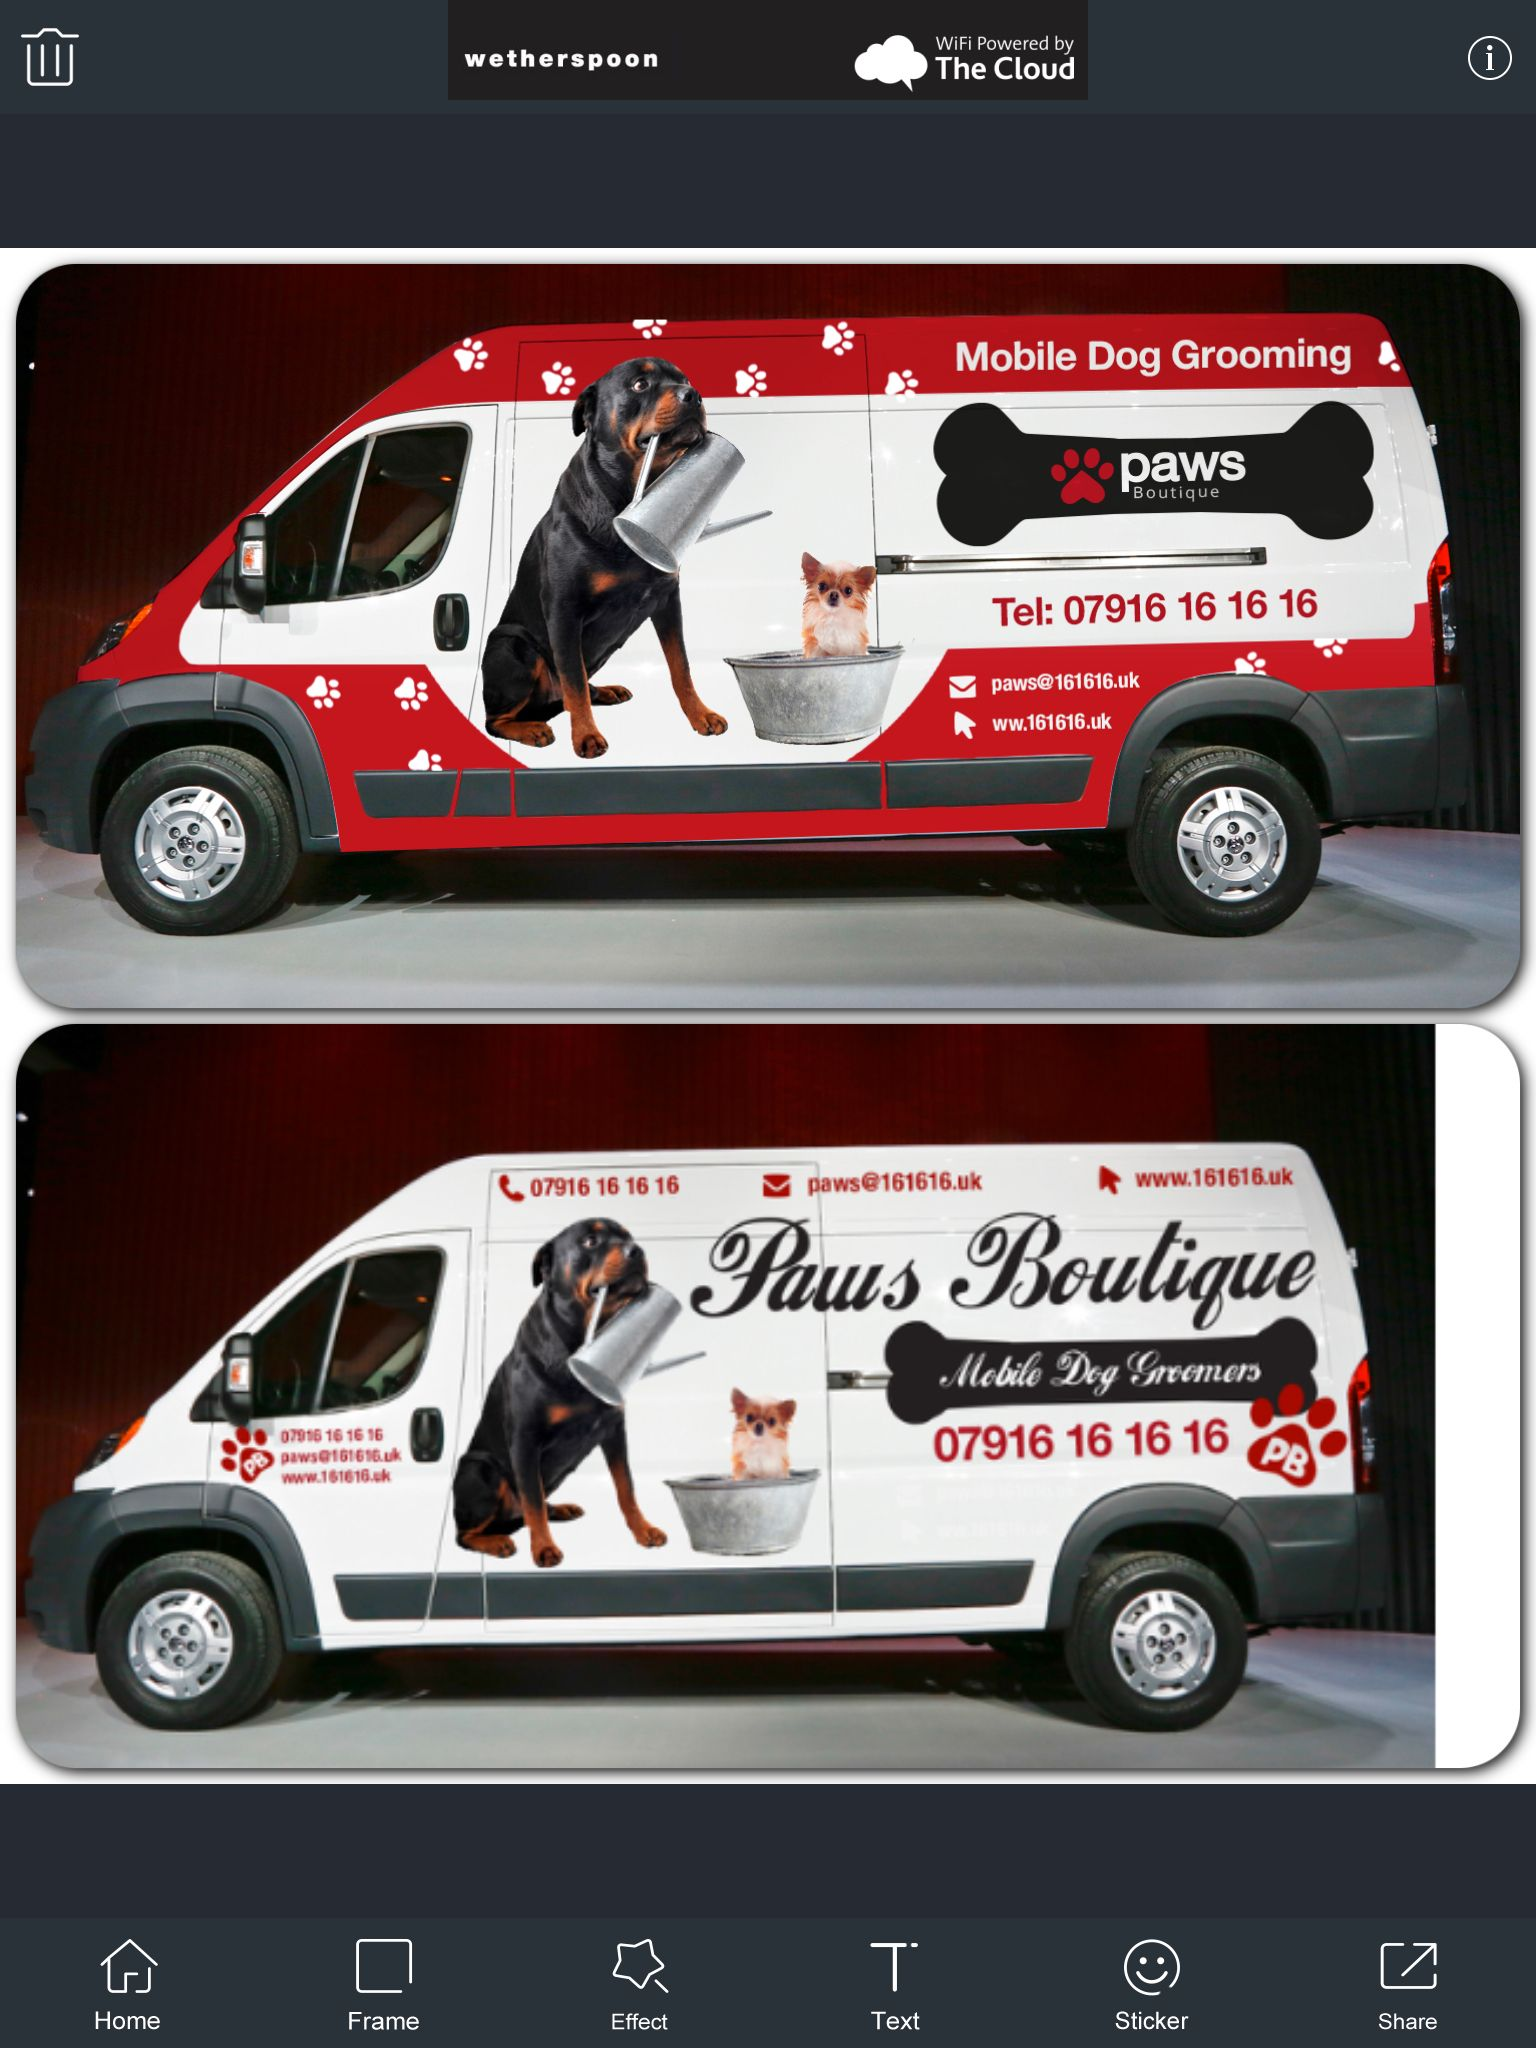 Paws Boutique Mobile Dog Grooming Birmingham Worcestershire 07916161616 Dog Grooming Mobile Pet Grooming Dog Groomers